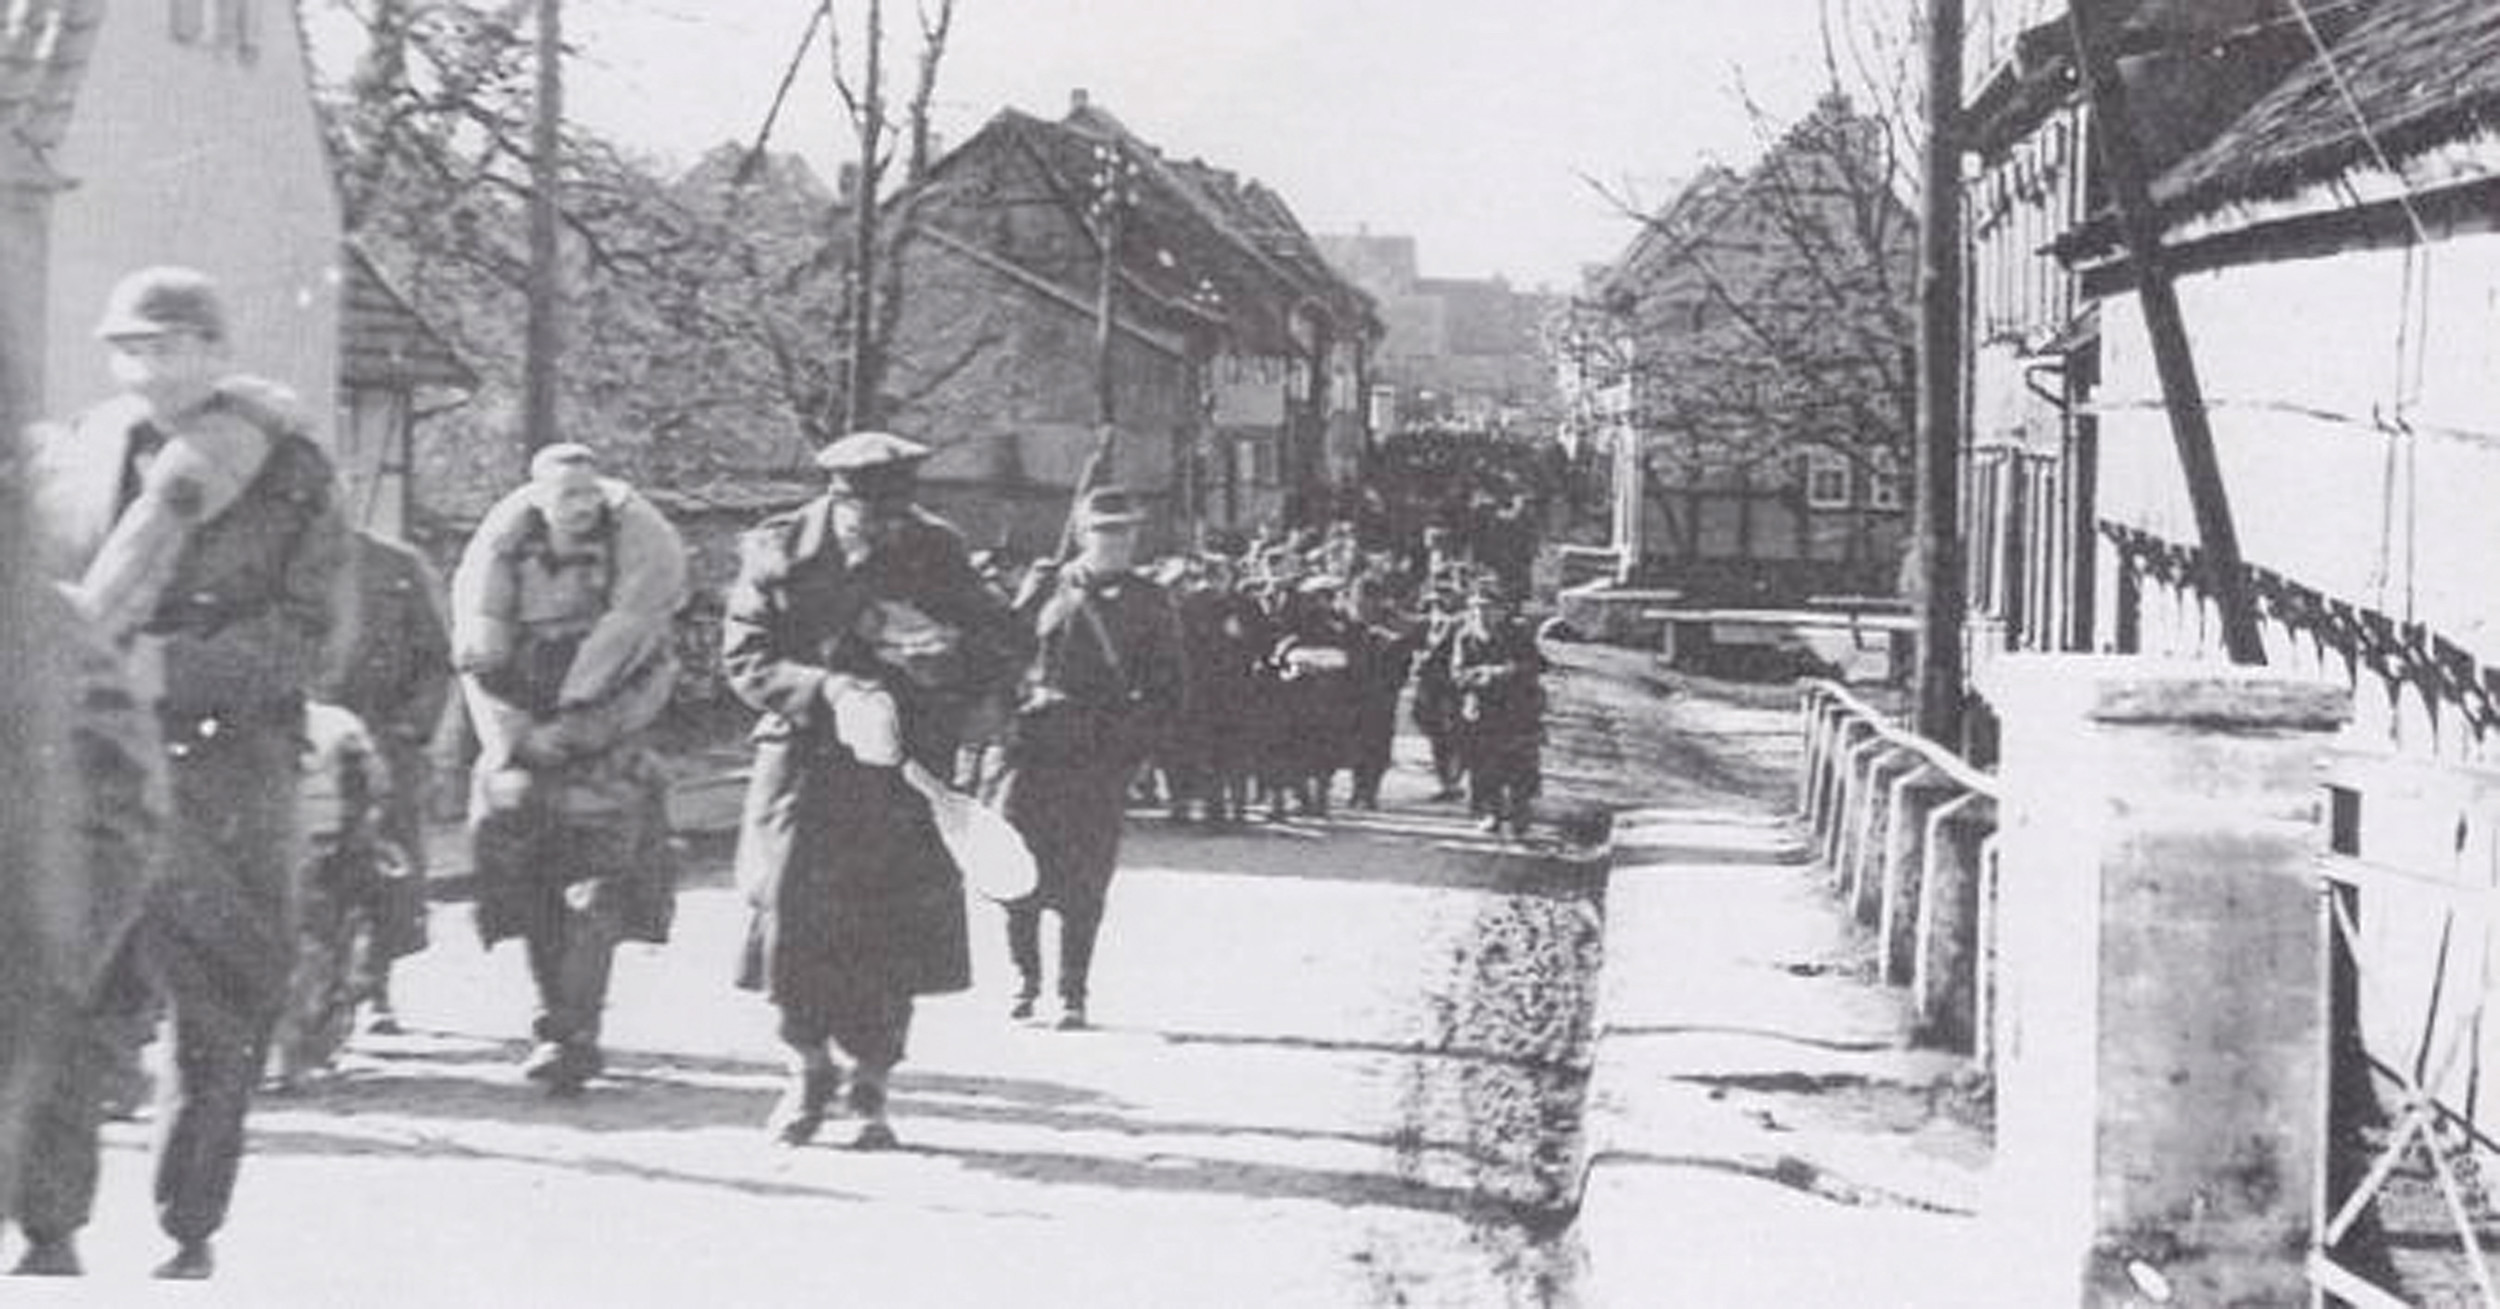 During his capture, Heckel was forced to walk for seven days on what was known as The March.